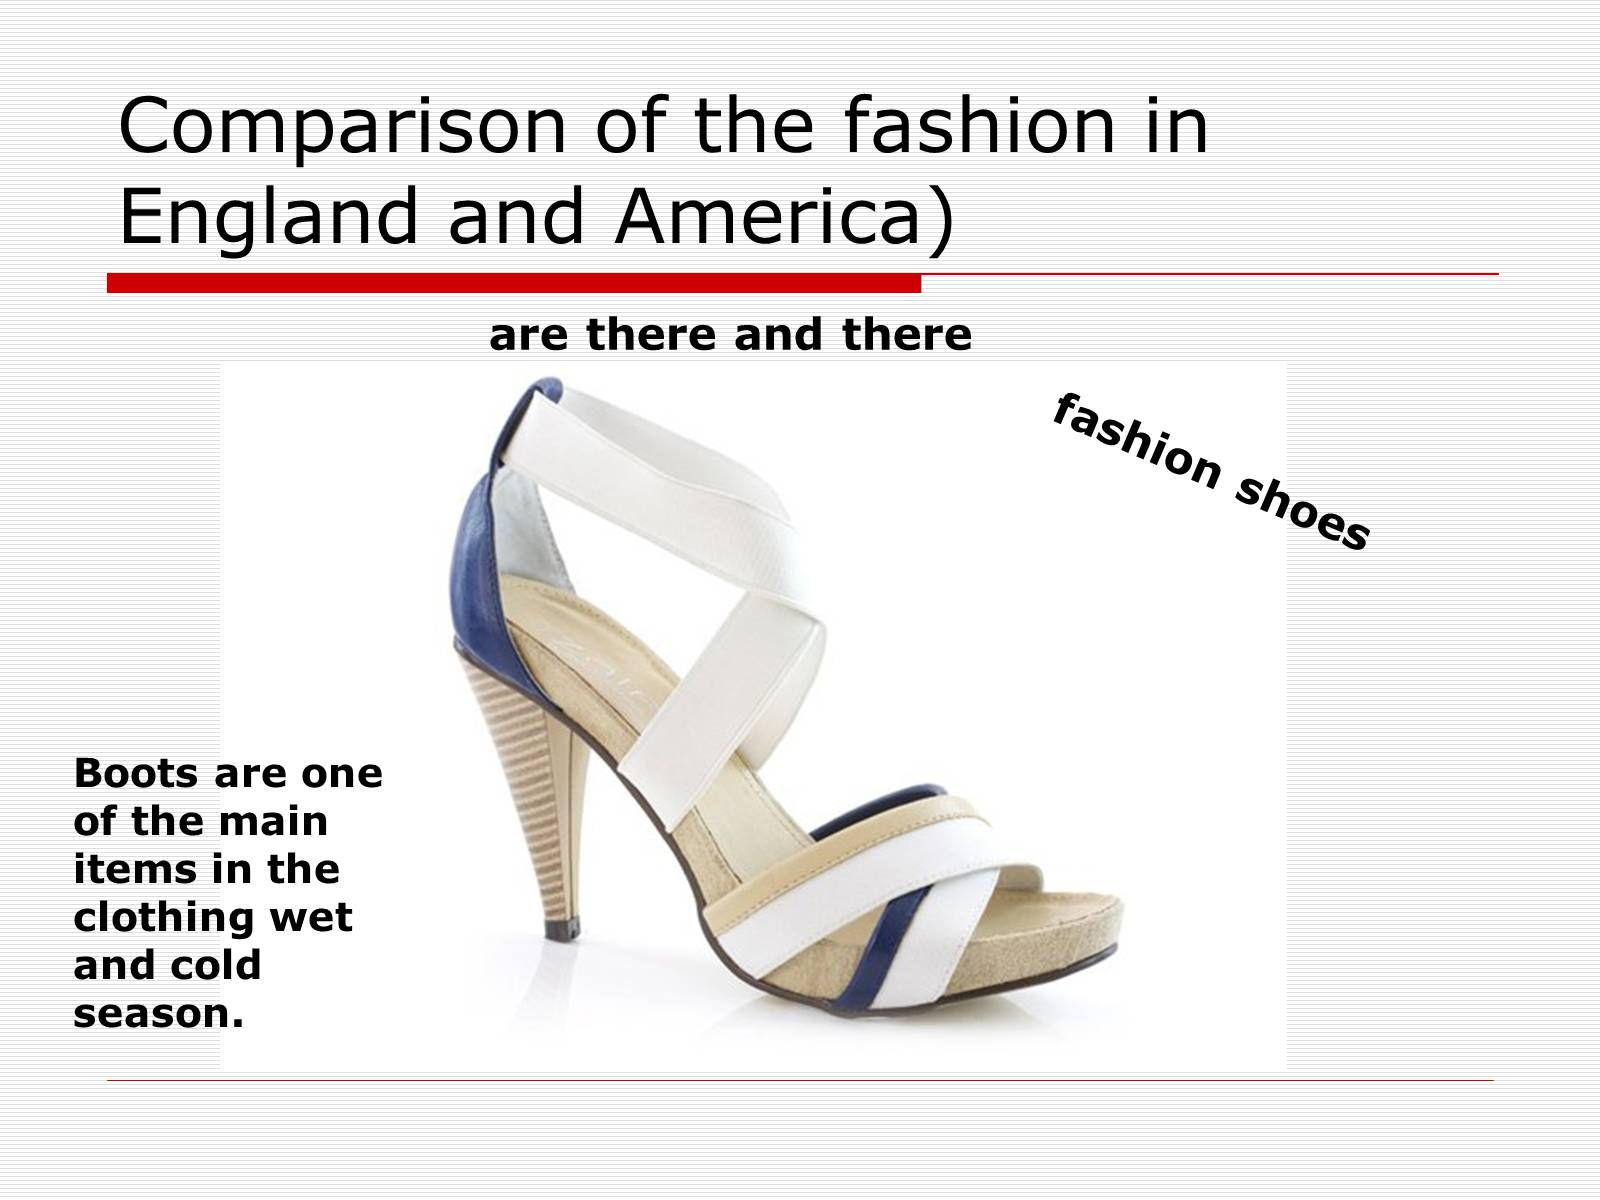 Презентація на тему «Comparison of the fashion in England and America» - Слайд #52